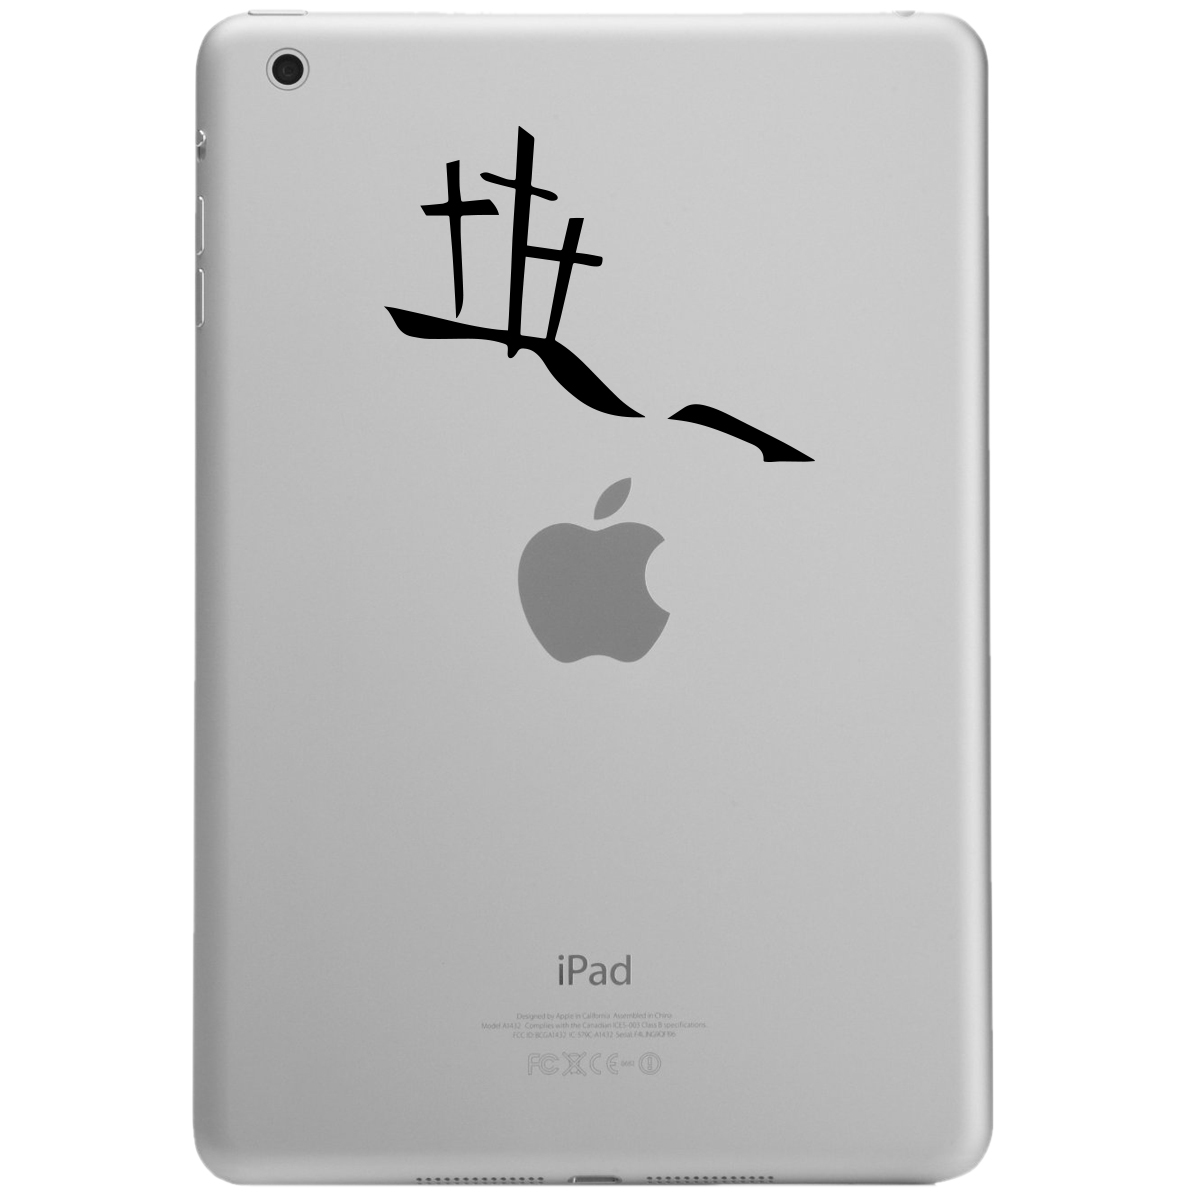 Calvary Hill Silhouette Crosses Christian iPad Tablet Vinyl Sticker Decal